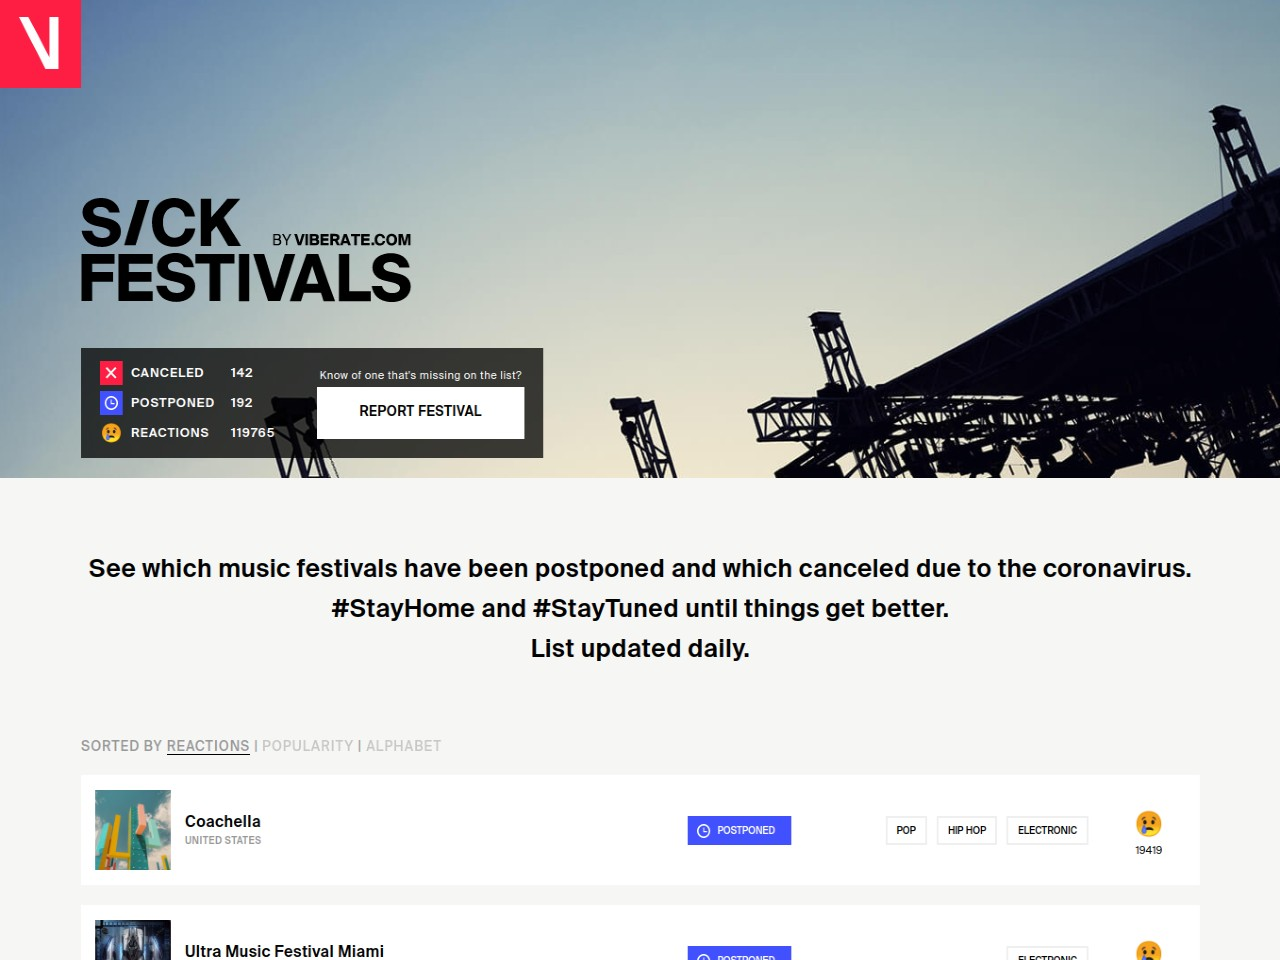 List of canceled and postponed festivals updated daily